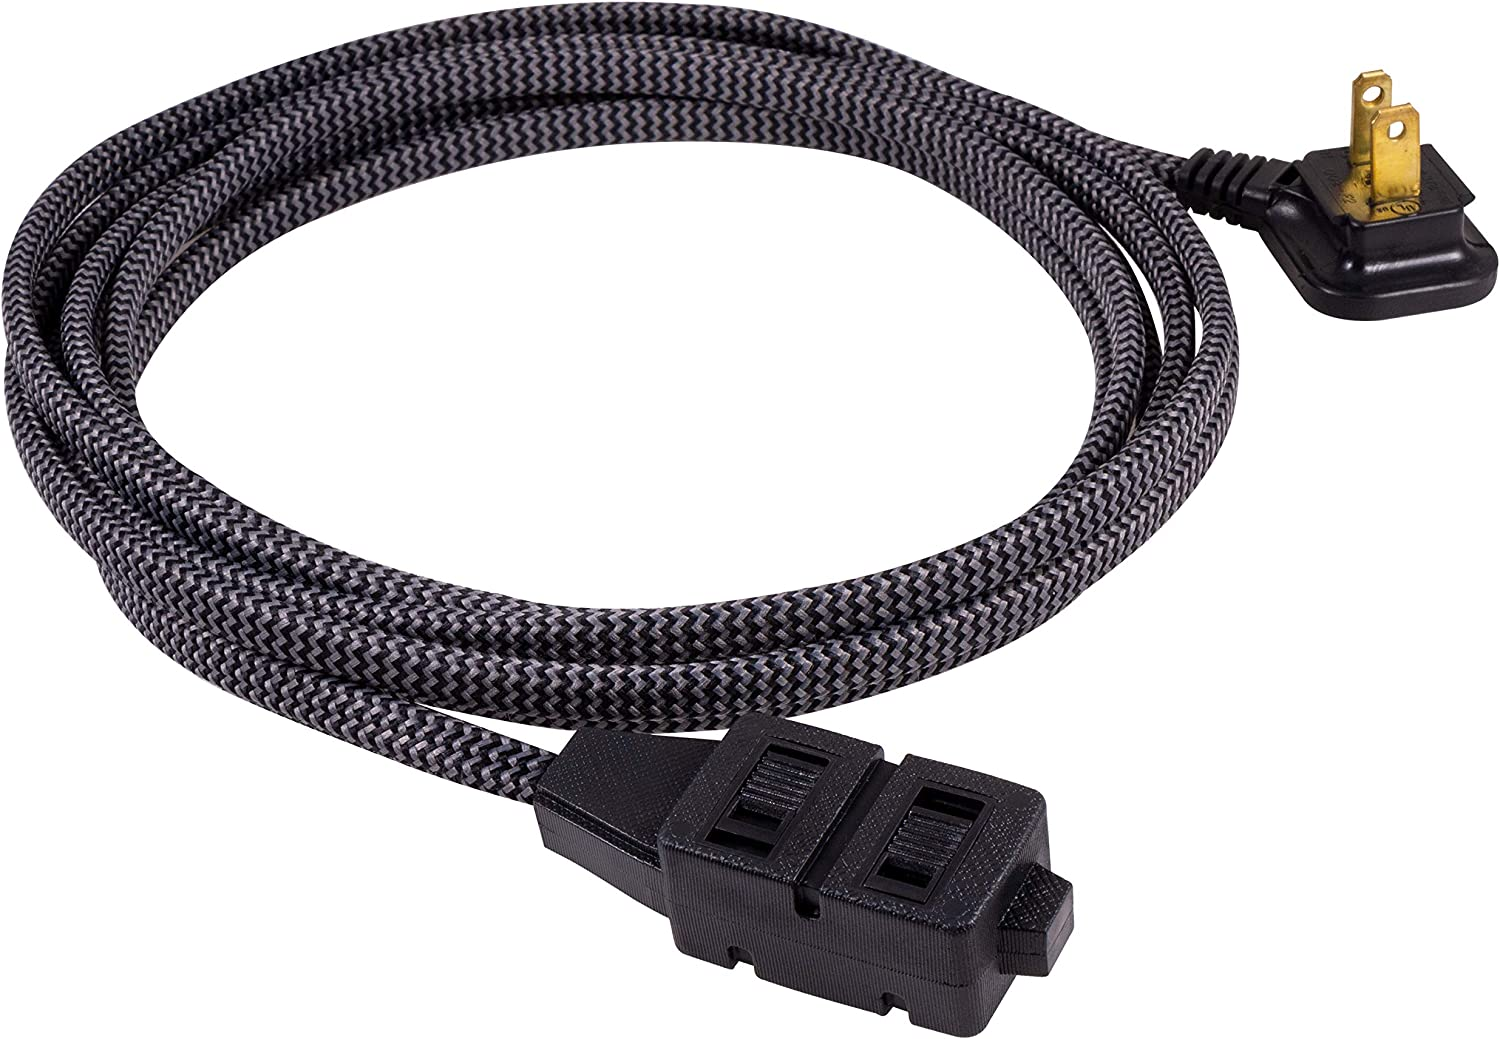 GE, Gray & Black 12 Ft Extra-Long Designer Braided Extension, 3 Strip, 2 Prong Outlets, Flat Plug, Tangle-Free Power Cord, Perfect For Home, Office or Kitchen, Ul Listed, 42386